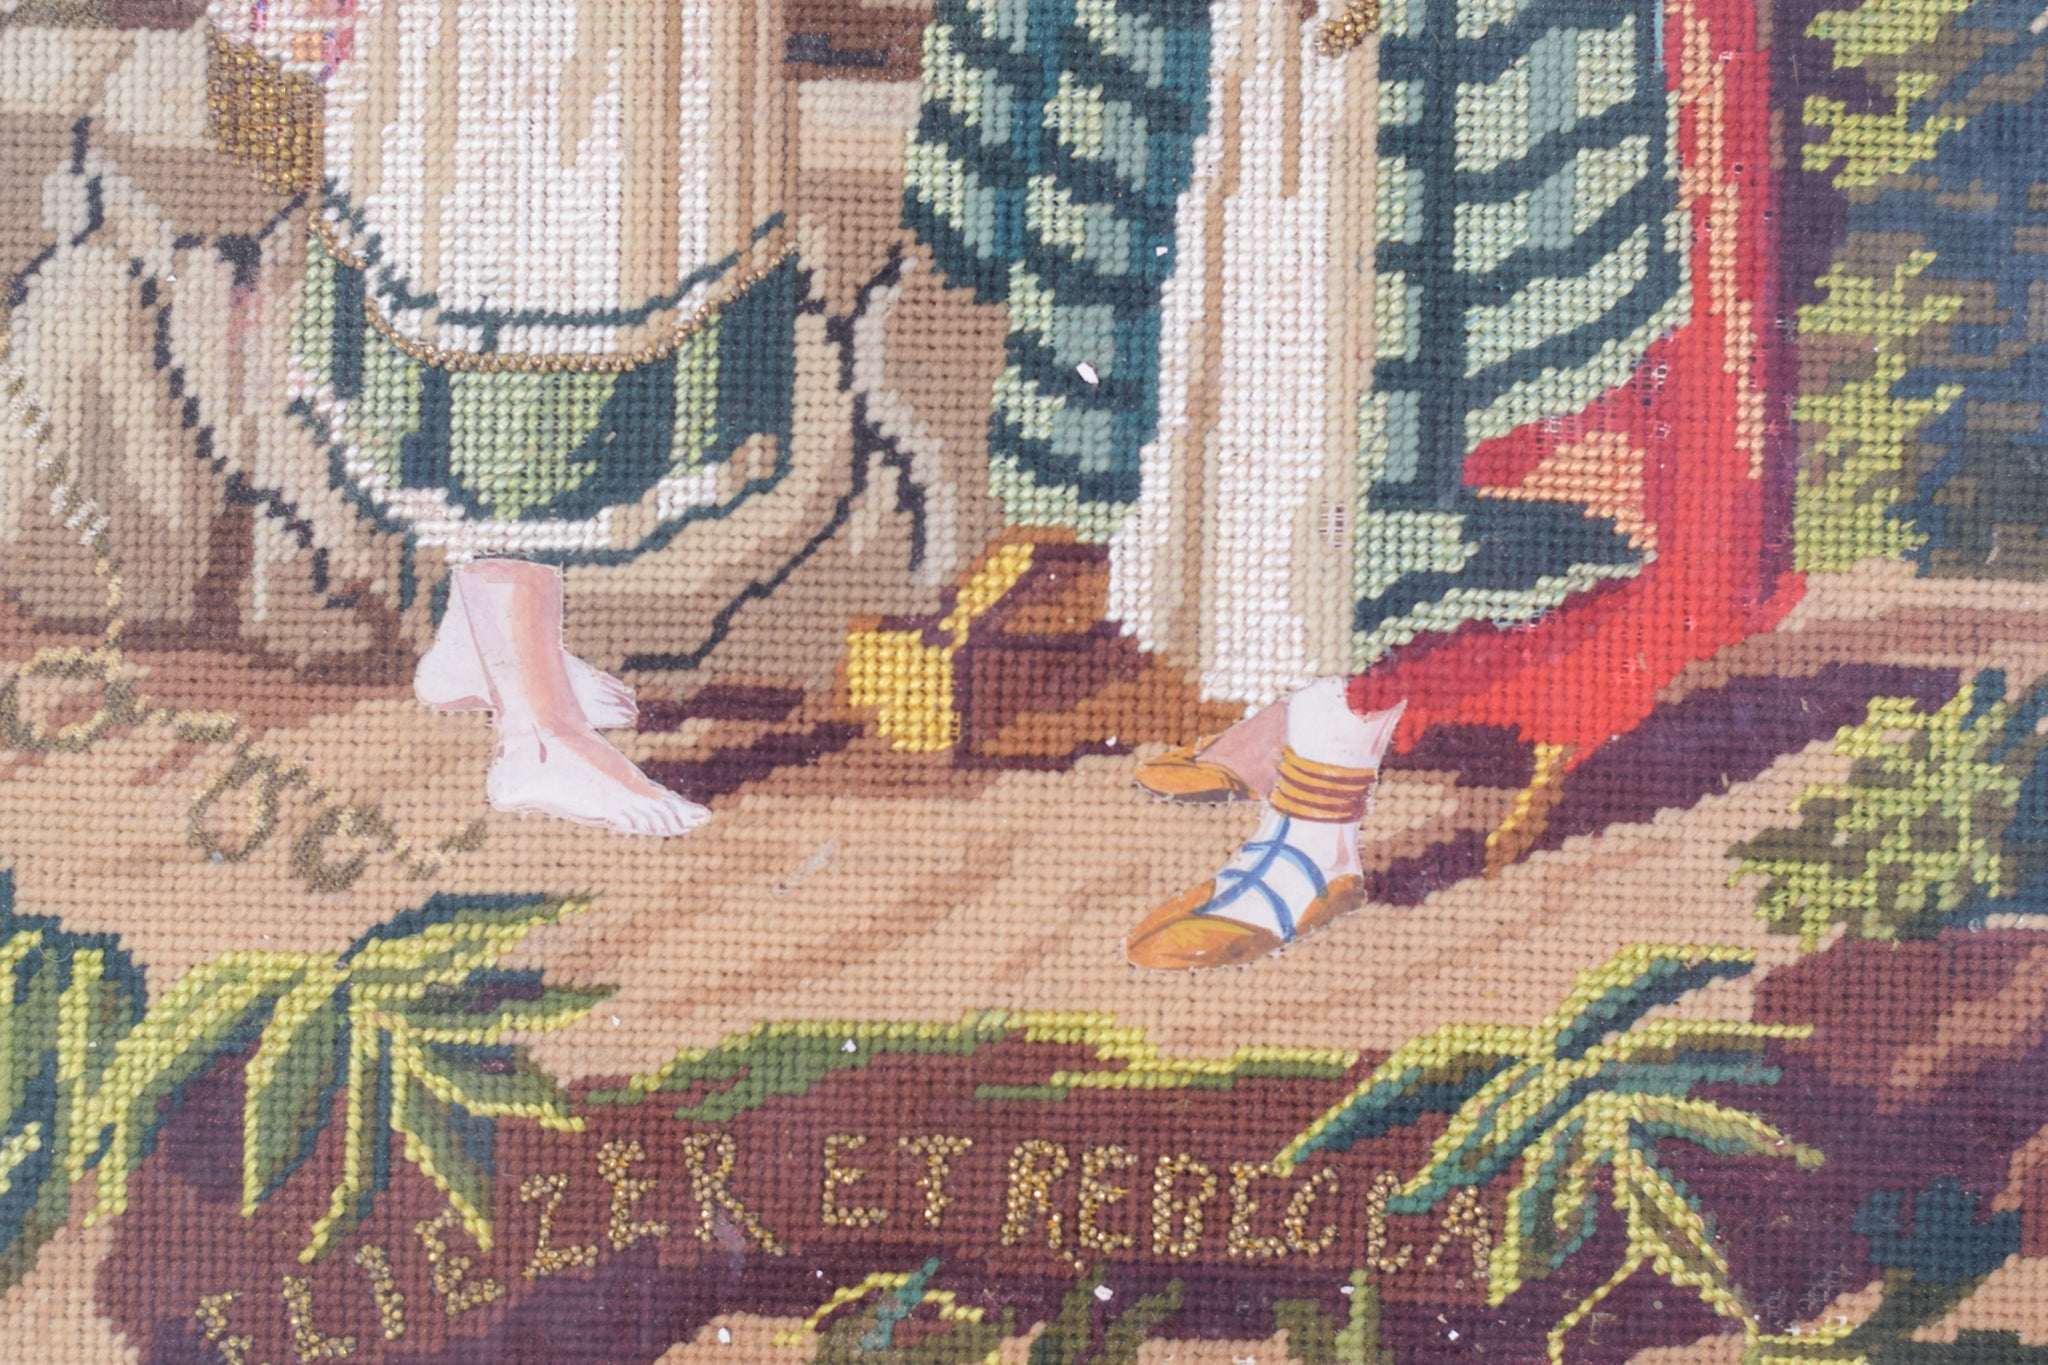 Framed embroidery 'Rebecca and Elezier at the Well'_Title